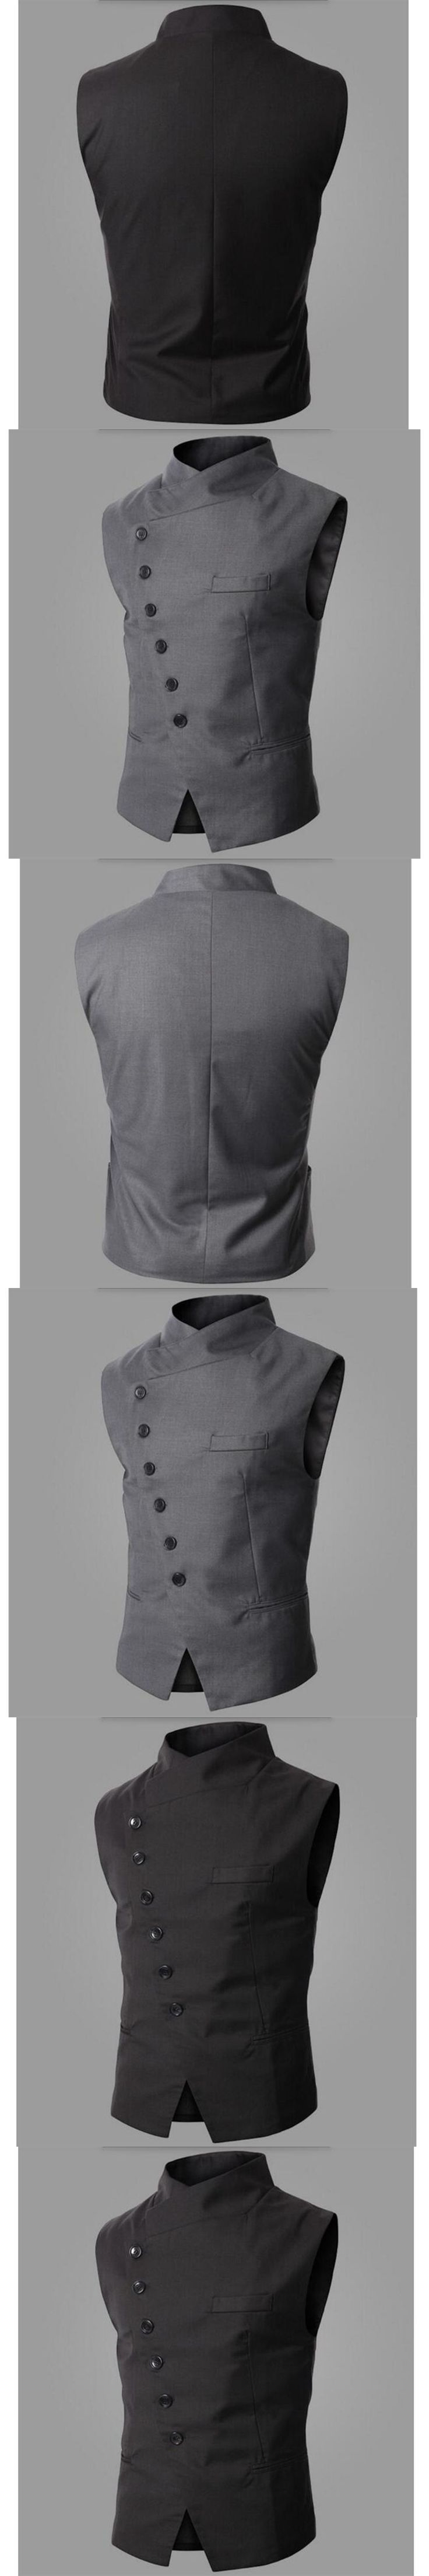 Fashion Men Suit Vest Design Mens Slim Fit Black Gray Inclined Breasted Waistcoat Autumn Casual Vest wedding groom vest